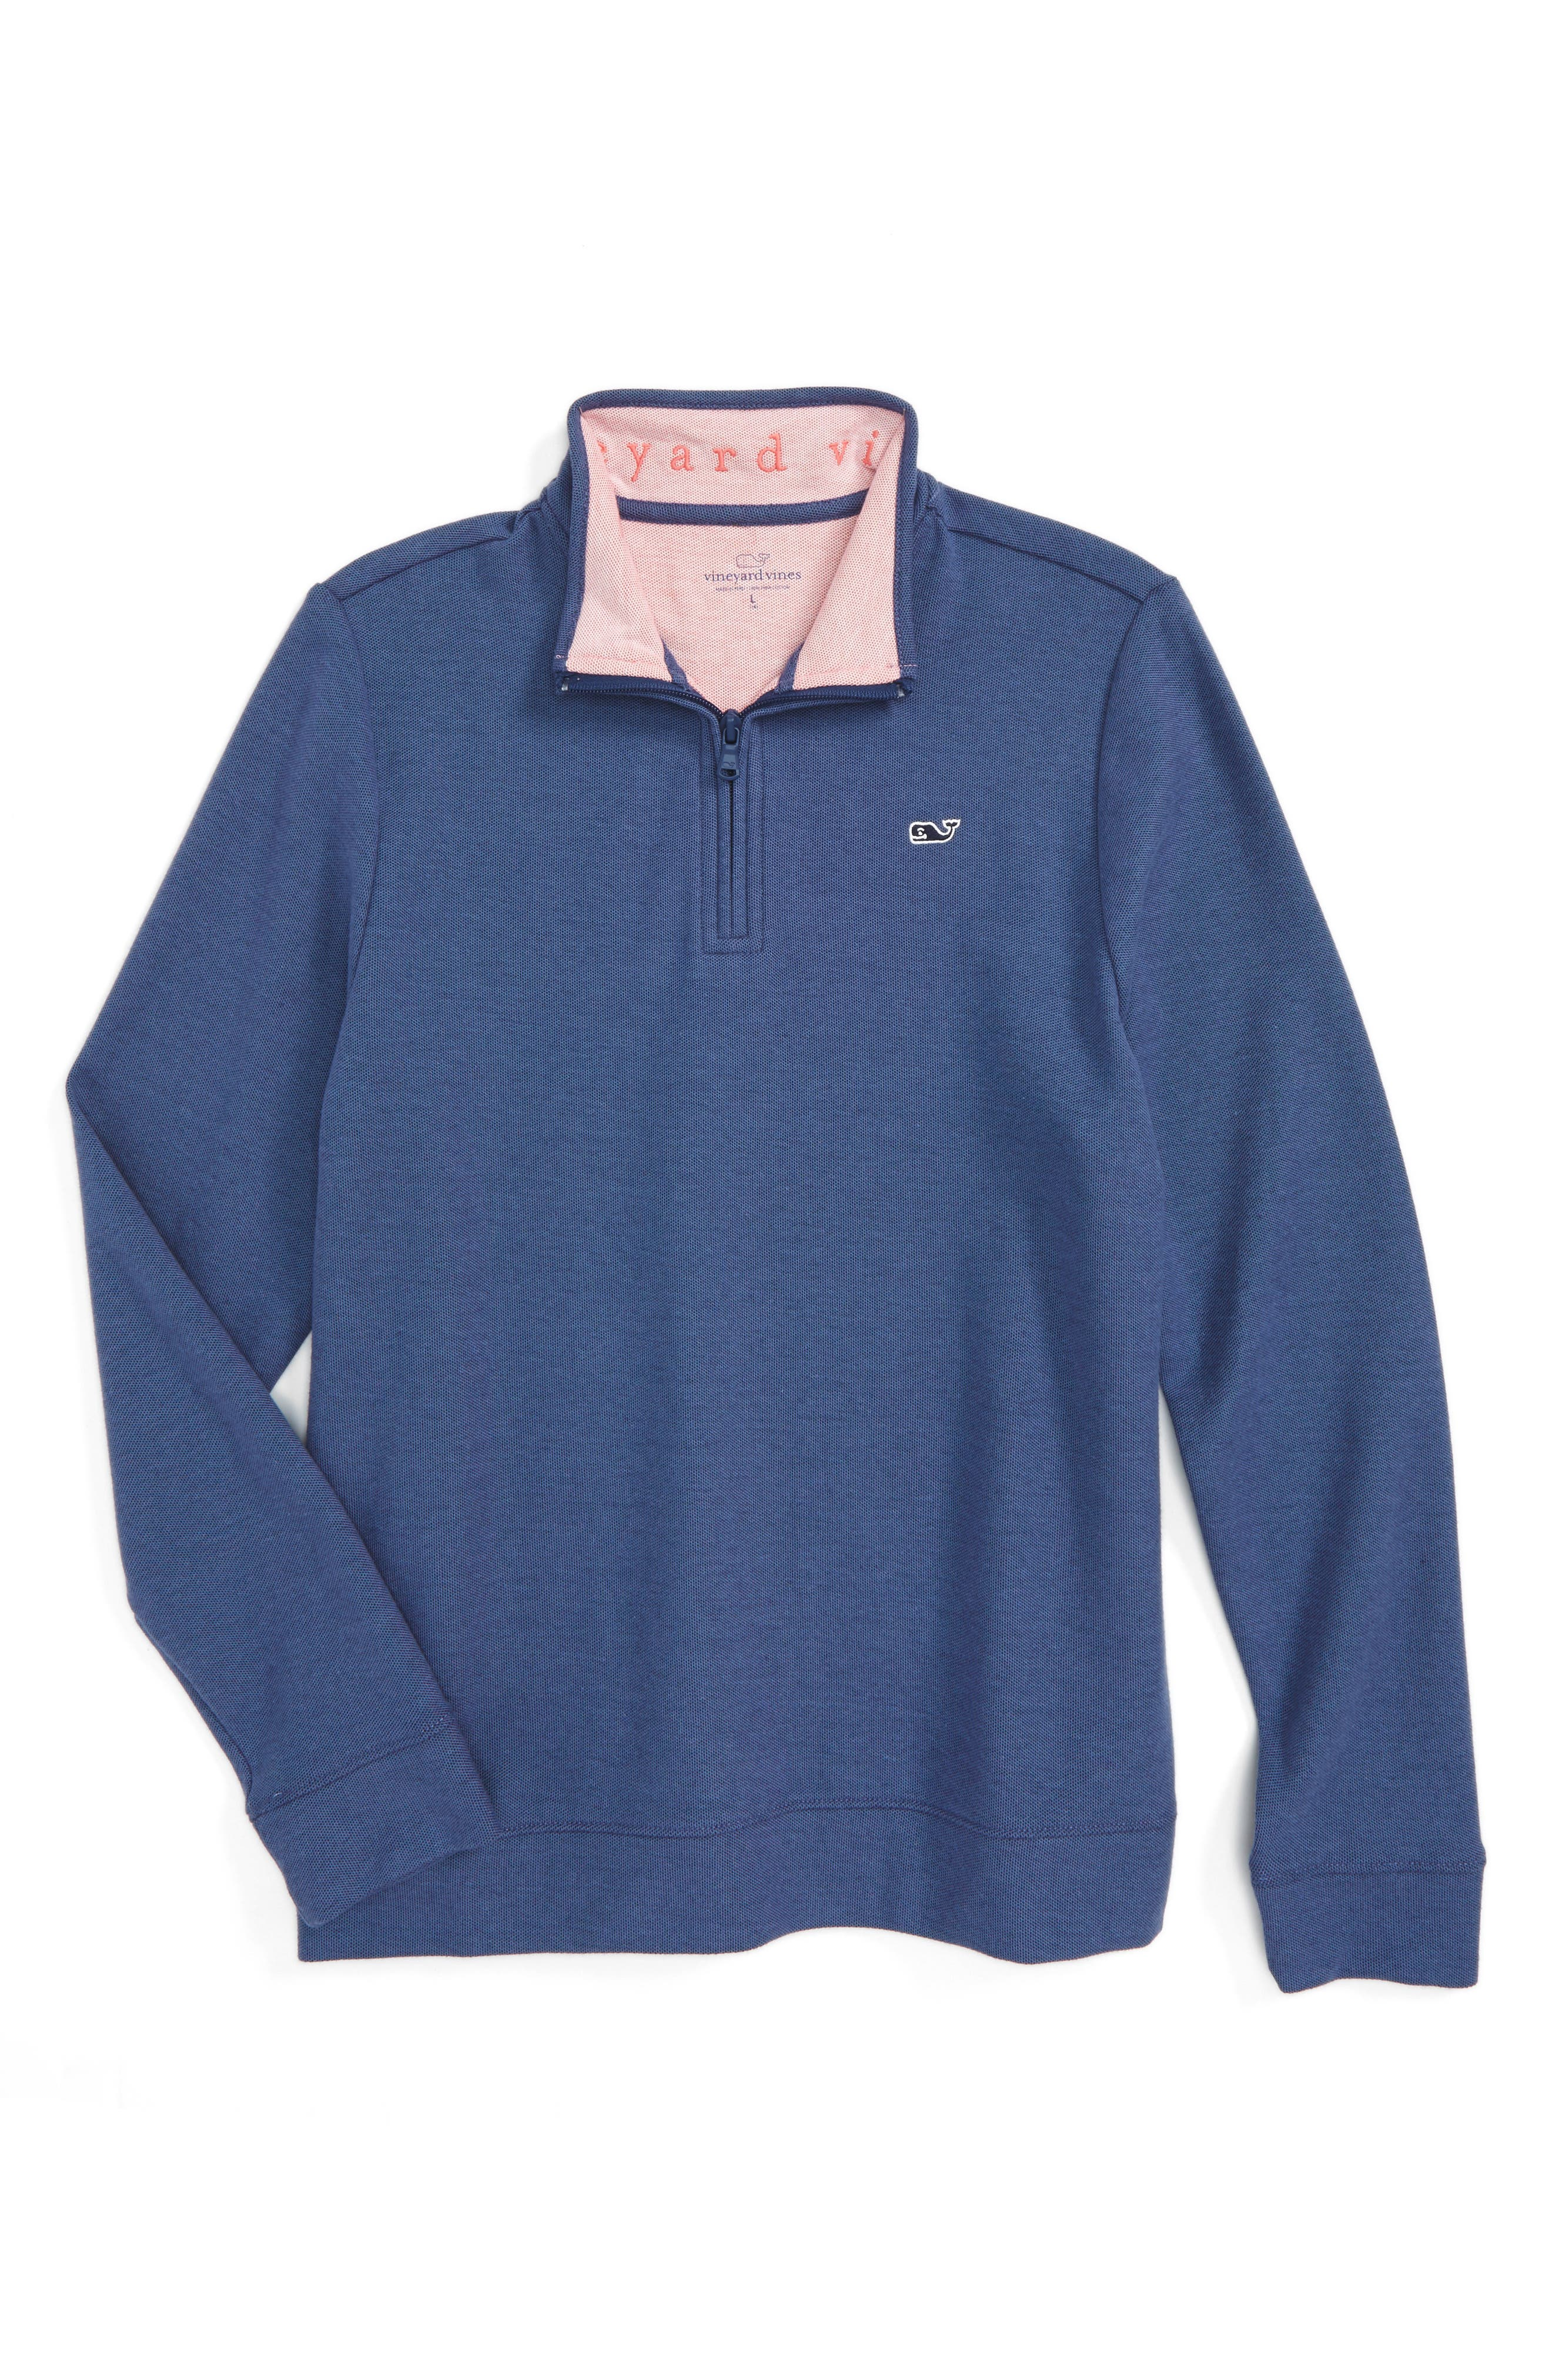 Alternate Image 1 Selected - vineyard vines Quarter Zip Pullover (Big Boys)